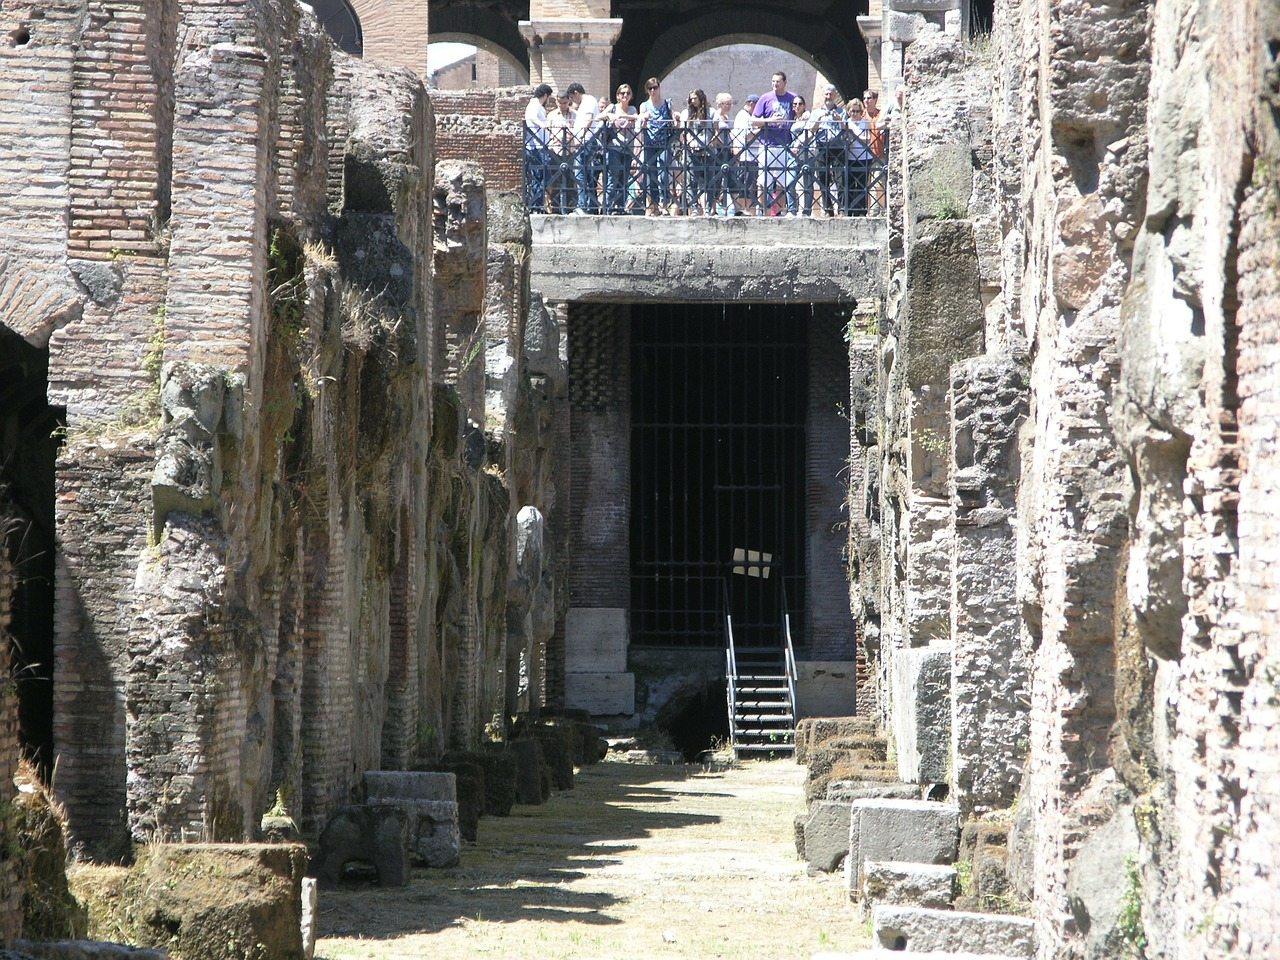 roman,gladiator,pathway,colosseum,coliseum,italy,rome,gladiators,romans,free pictures, free photos, free images, royalty free, free illustrations, public domain